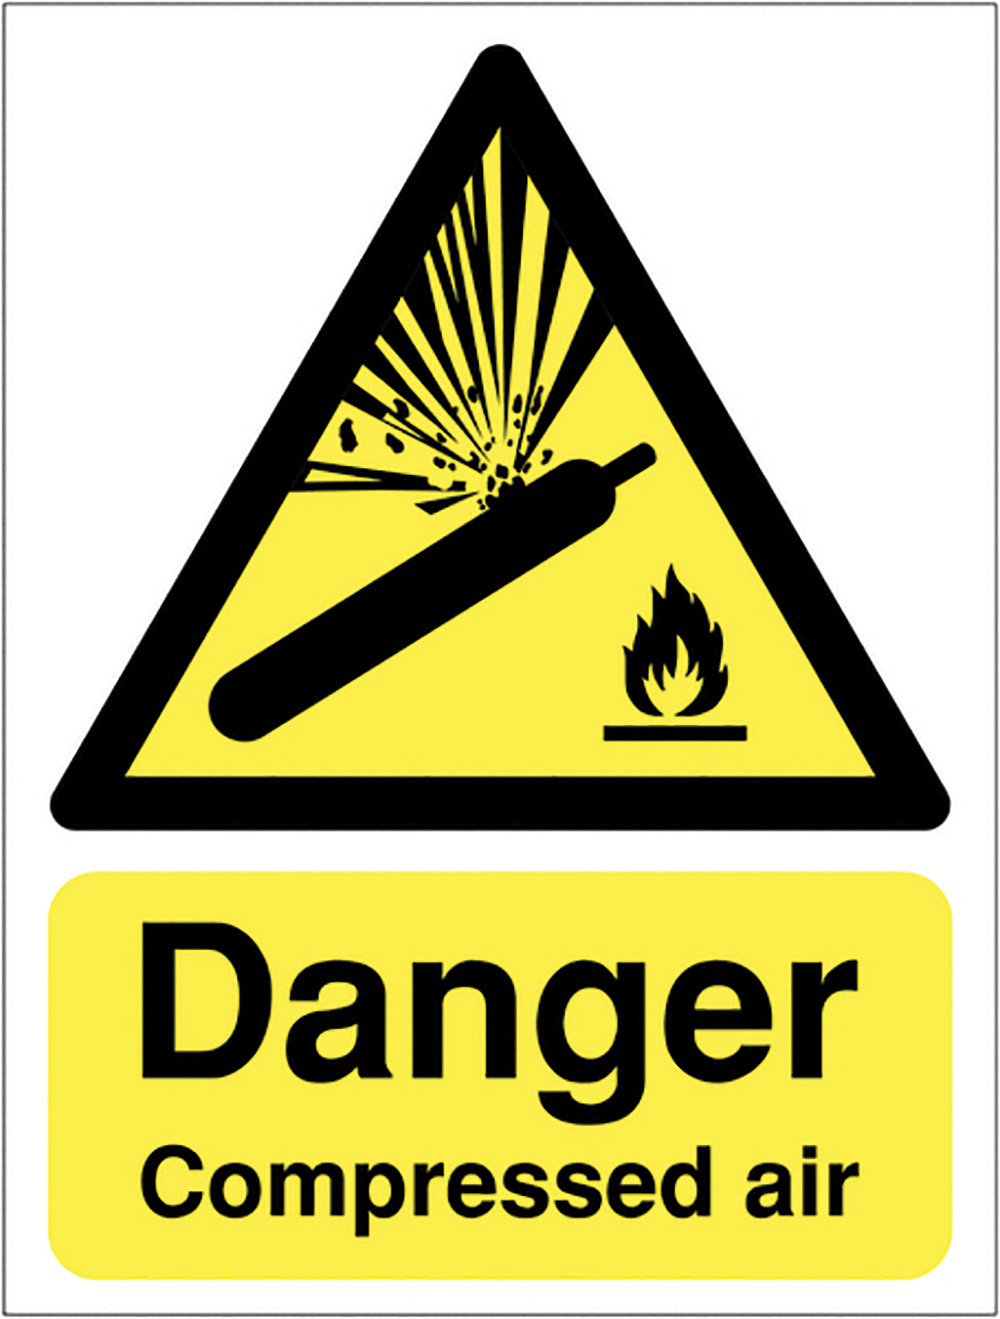 Danger Compressed Air 420x297mm Self Adhesive Vinyl Safety Sign